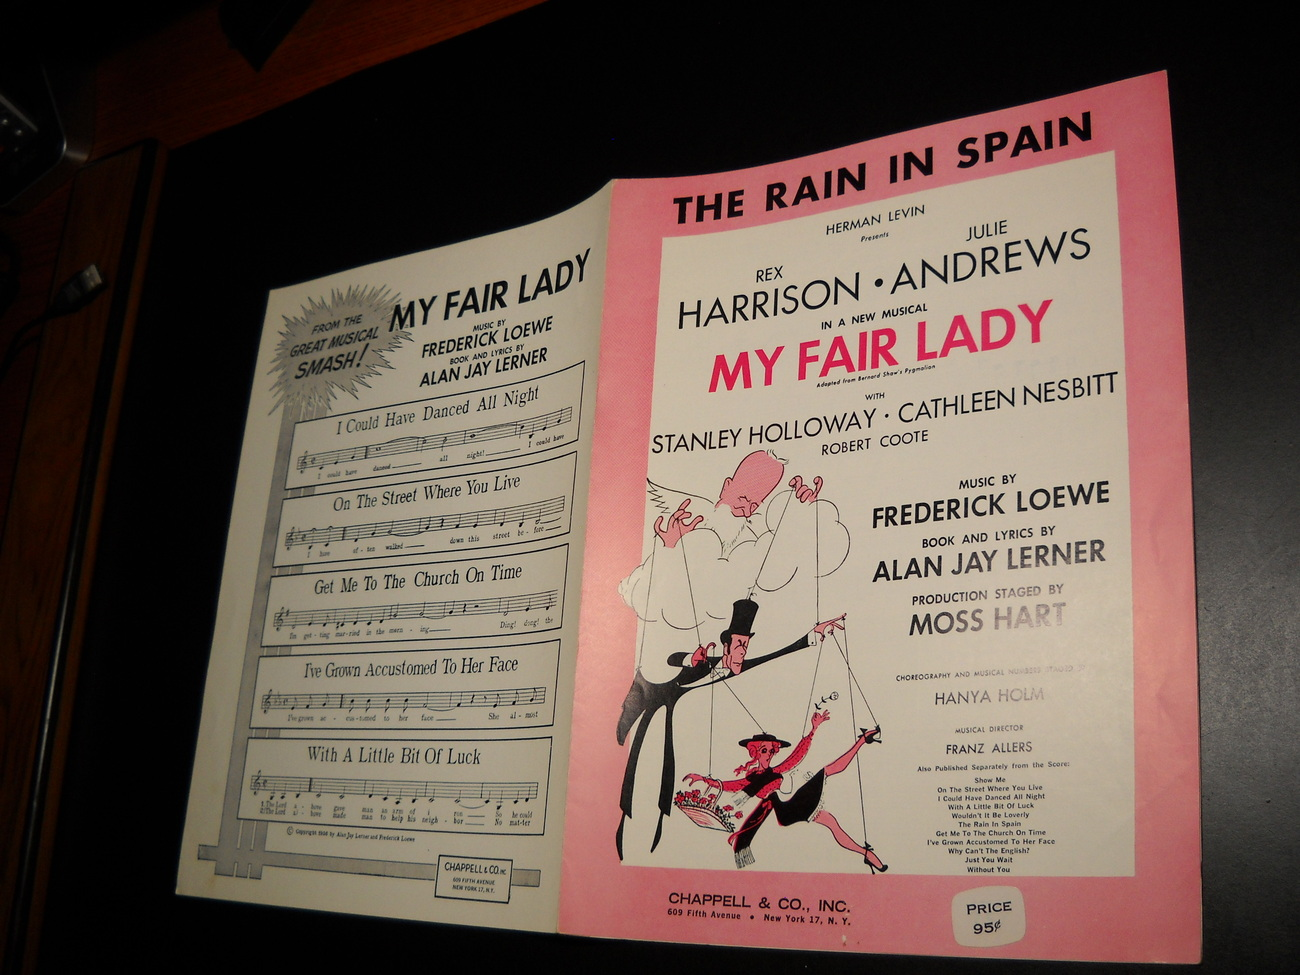 Sheet_music_the_rain_in_spain_my_fair_lady_harrison_andrews_1956_chappell__05